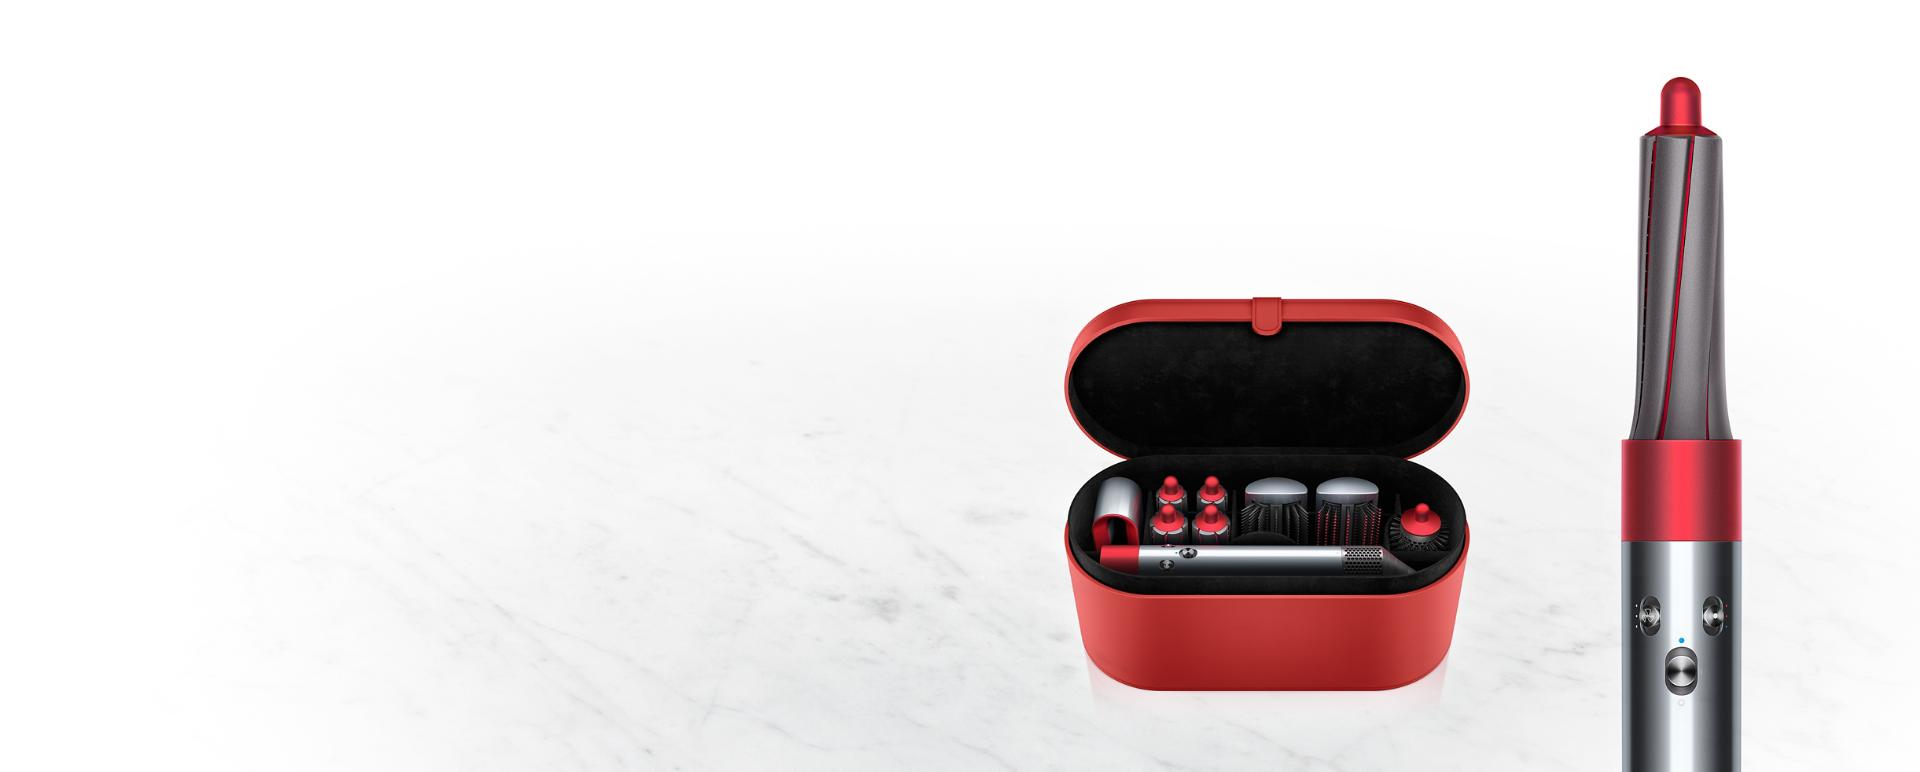 Dyson Airwrap styler curling and smoothing hair.